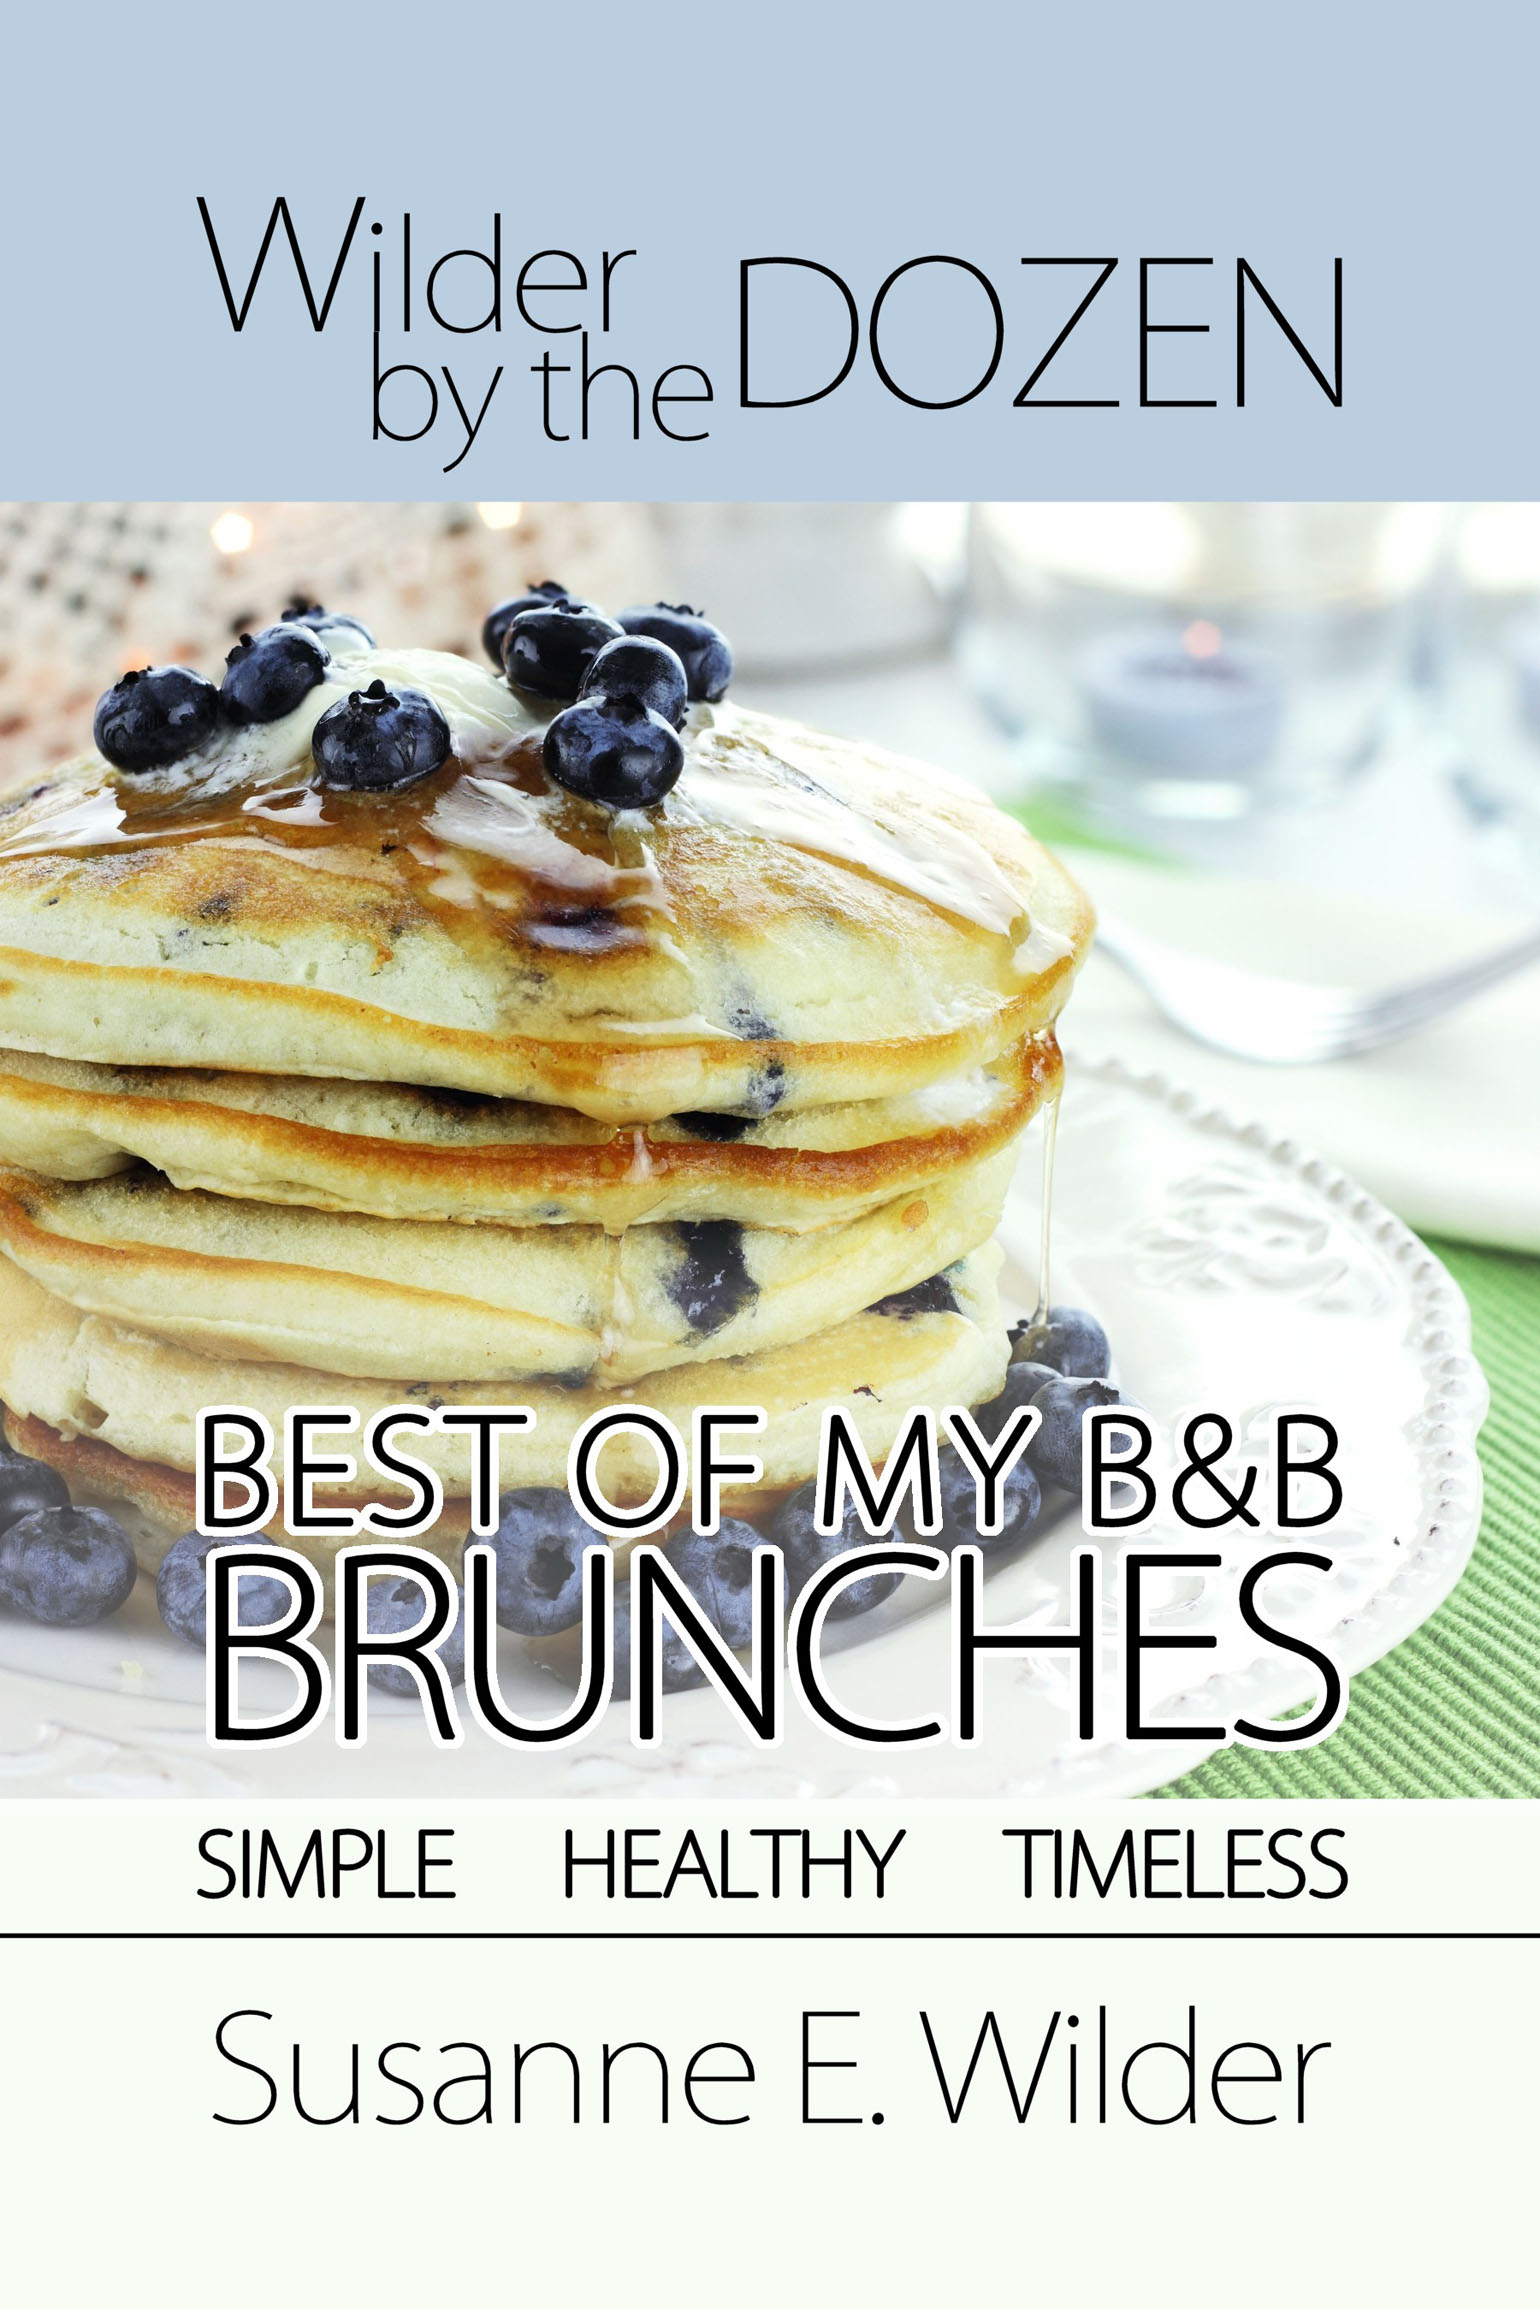 Best of My B&B Brunches